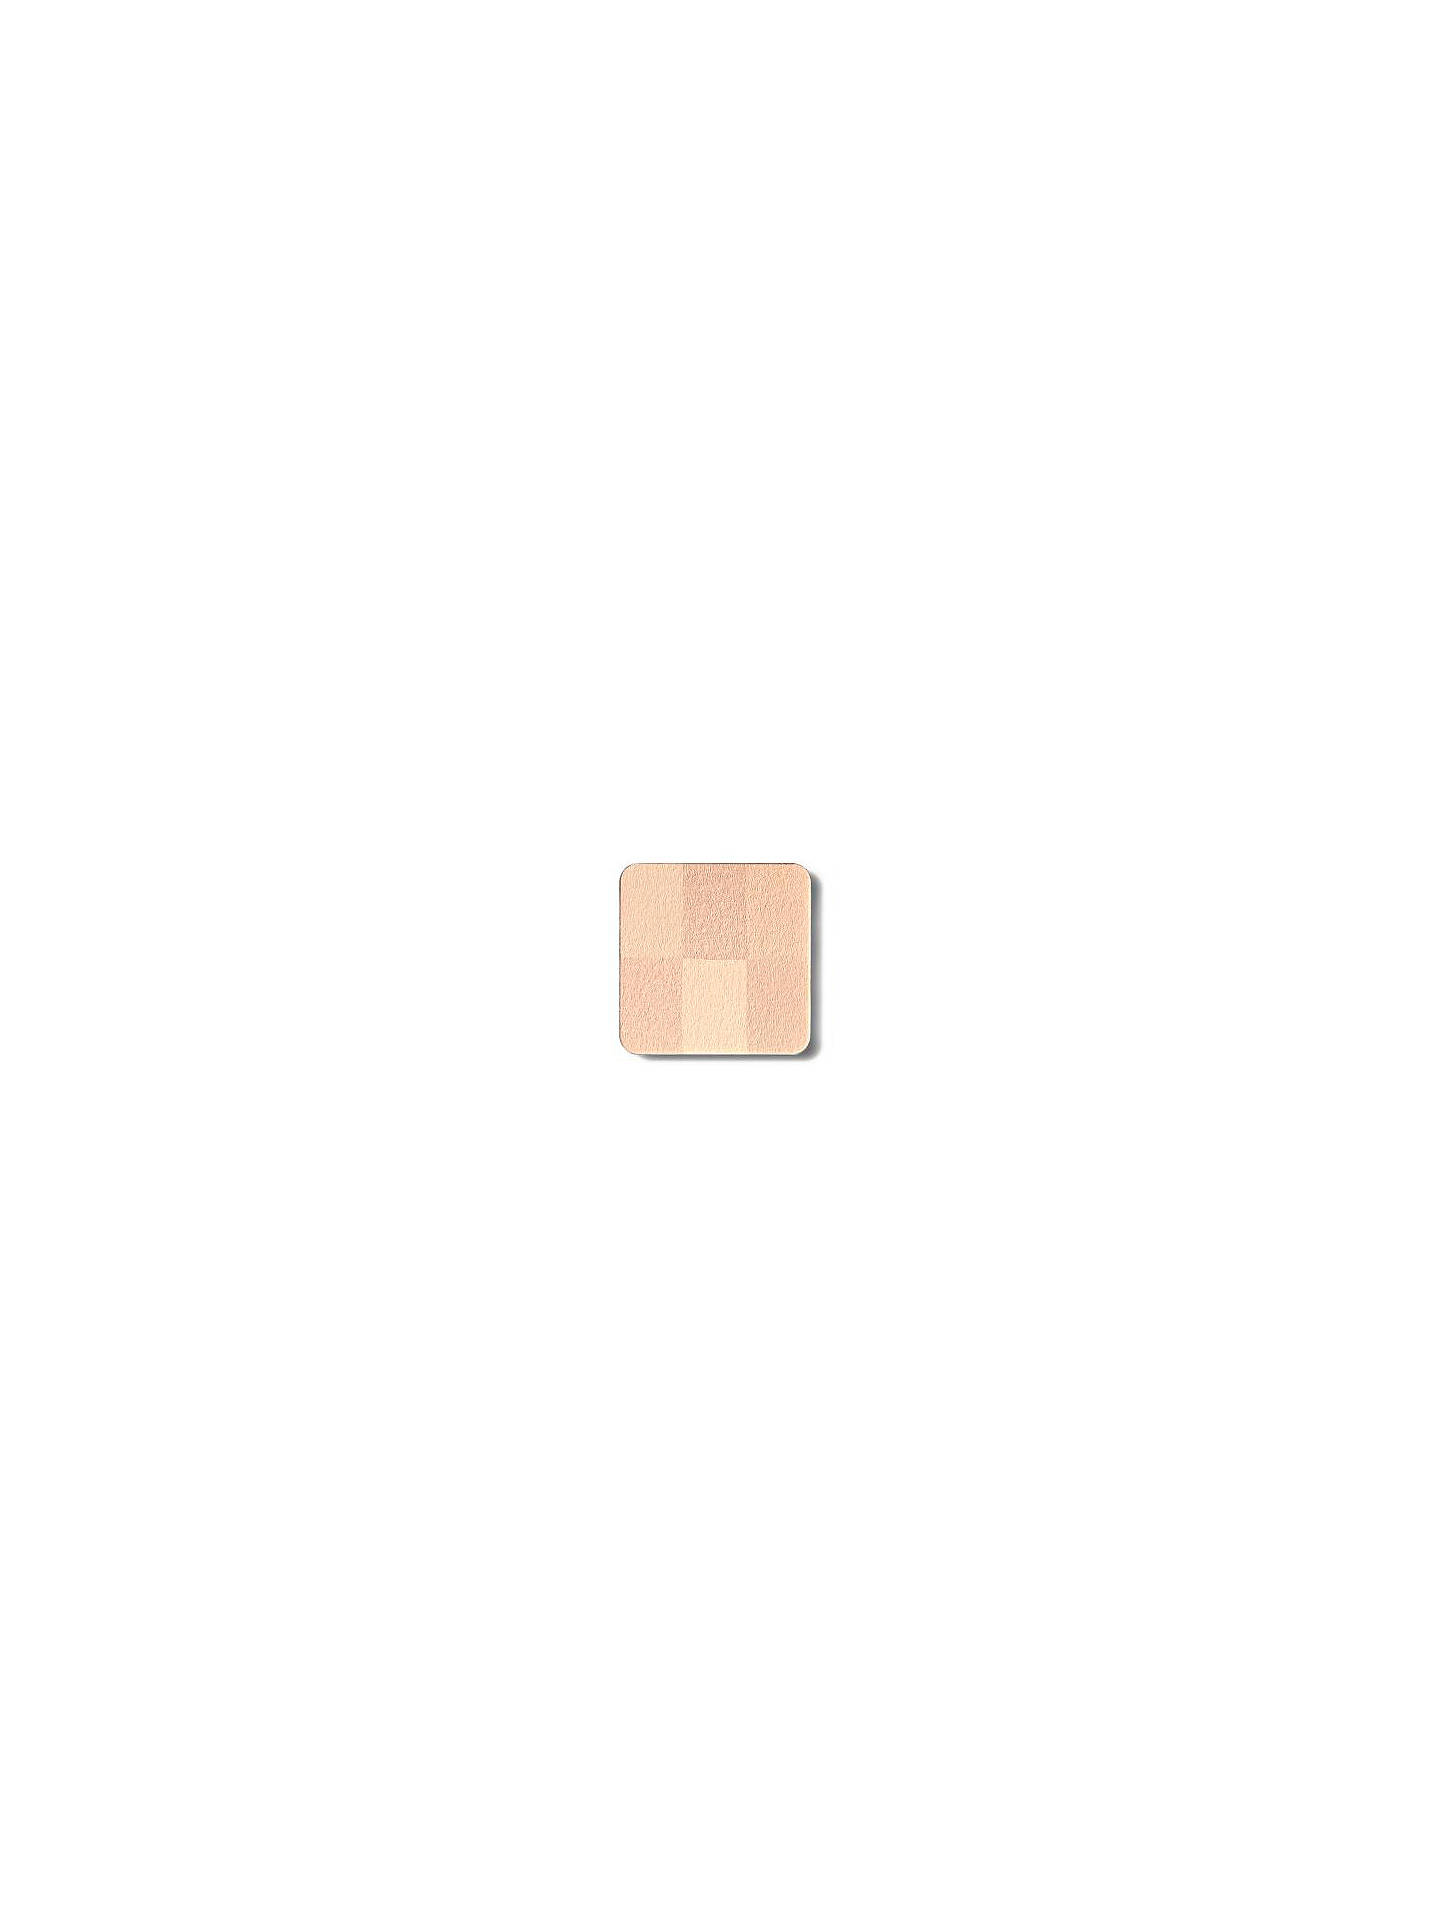 Buy Bobbi Brown Nude Finish Illuminating Powder, Bare Online at johnlewis.com